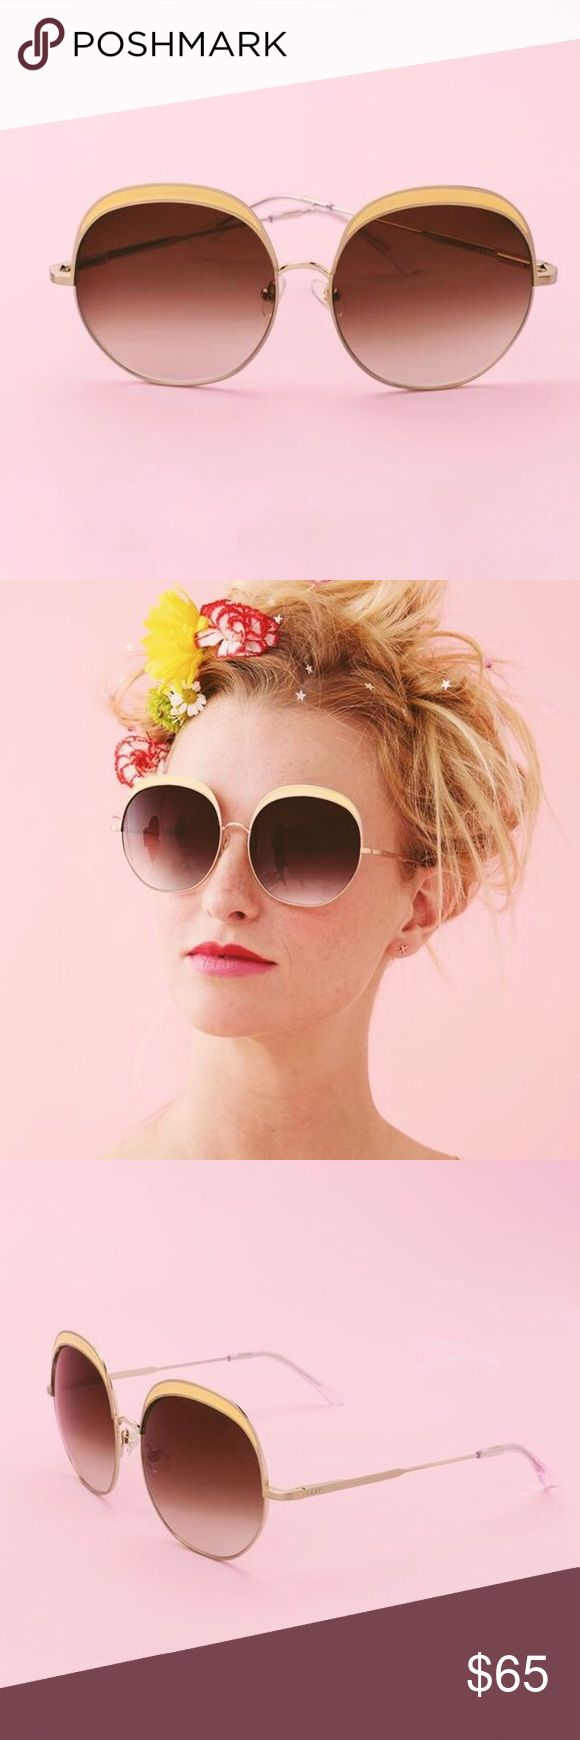 cloud magic sunnies these oversized sunnies by crap eyewear are giving us major modern-day jackie-o vibes! available in seafoam or yellow, these sunnies are the perfect way to glam up any look.  brushed gold wire and yellow enamel inlay  cr-39 lenses with 100% uva/uvb protection  spring hinges to ensure comfort and fit  fit bridge: 16mm eye: 58mm stems: 146mm crap eyewear Accessories Sunglasses